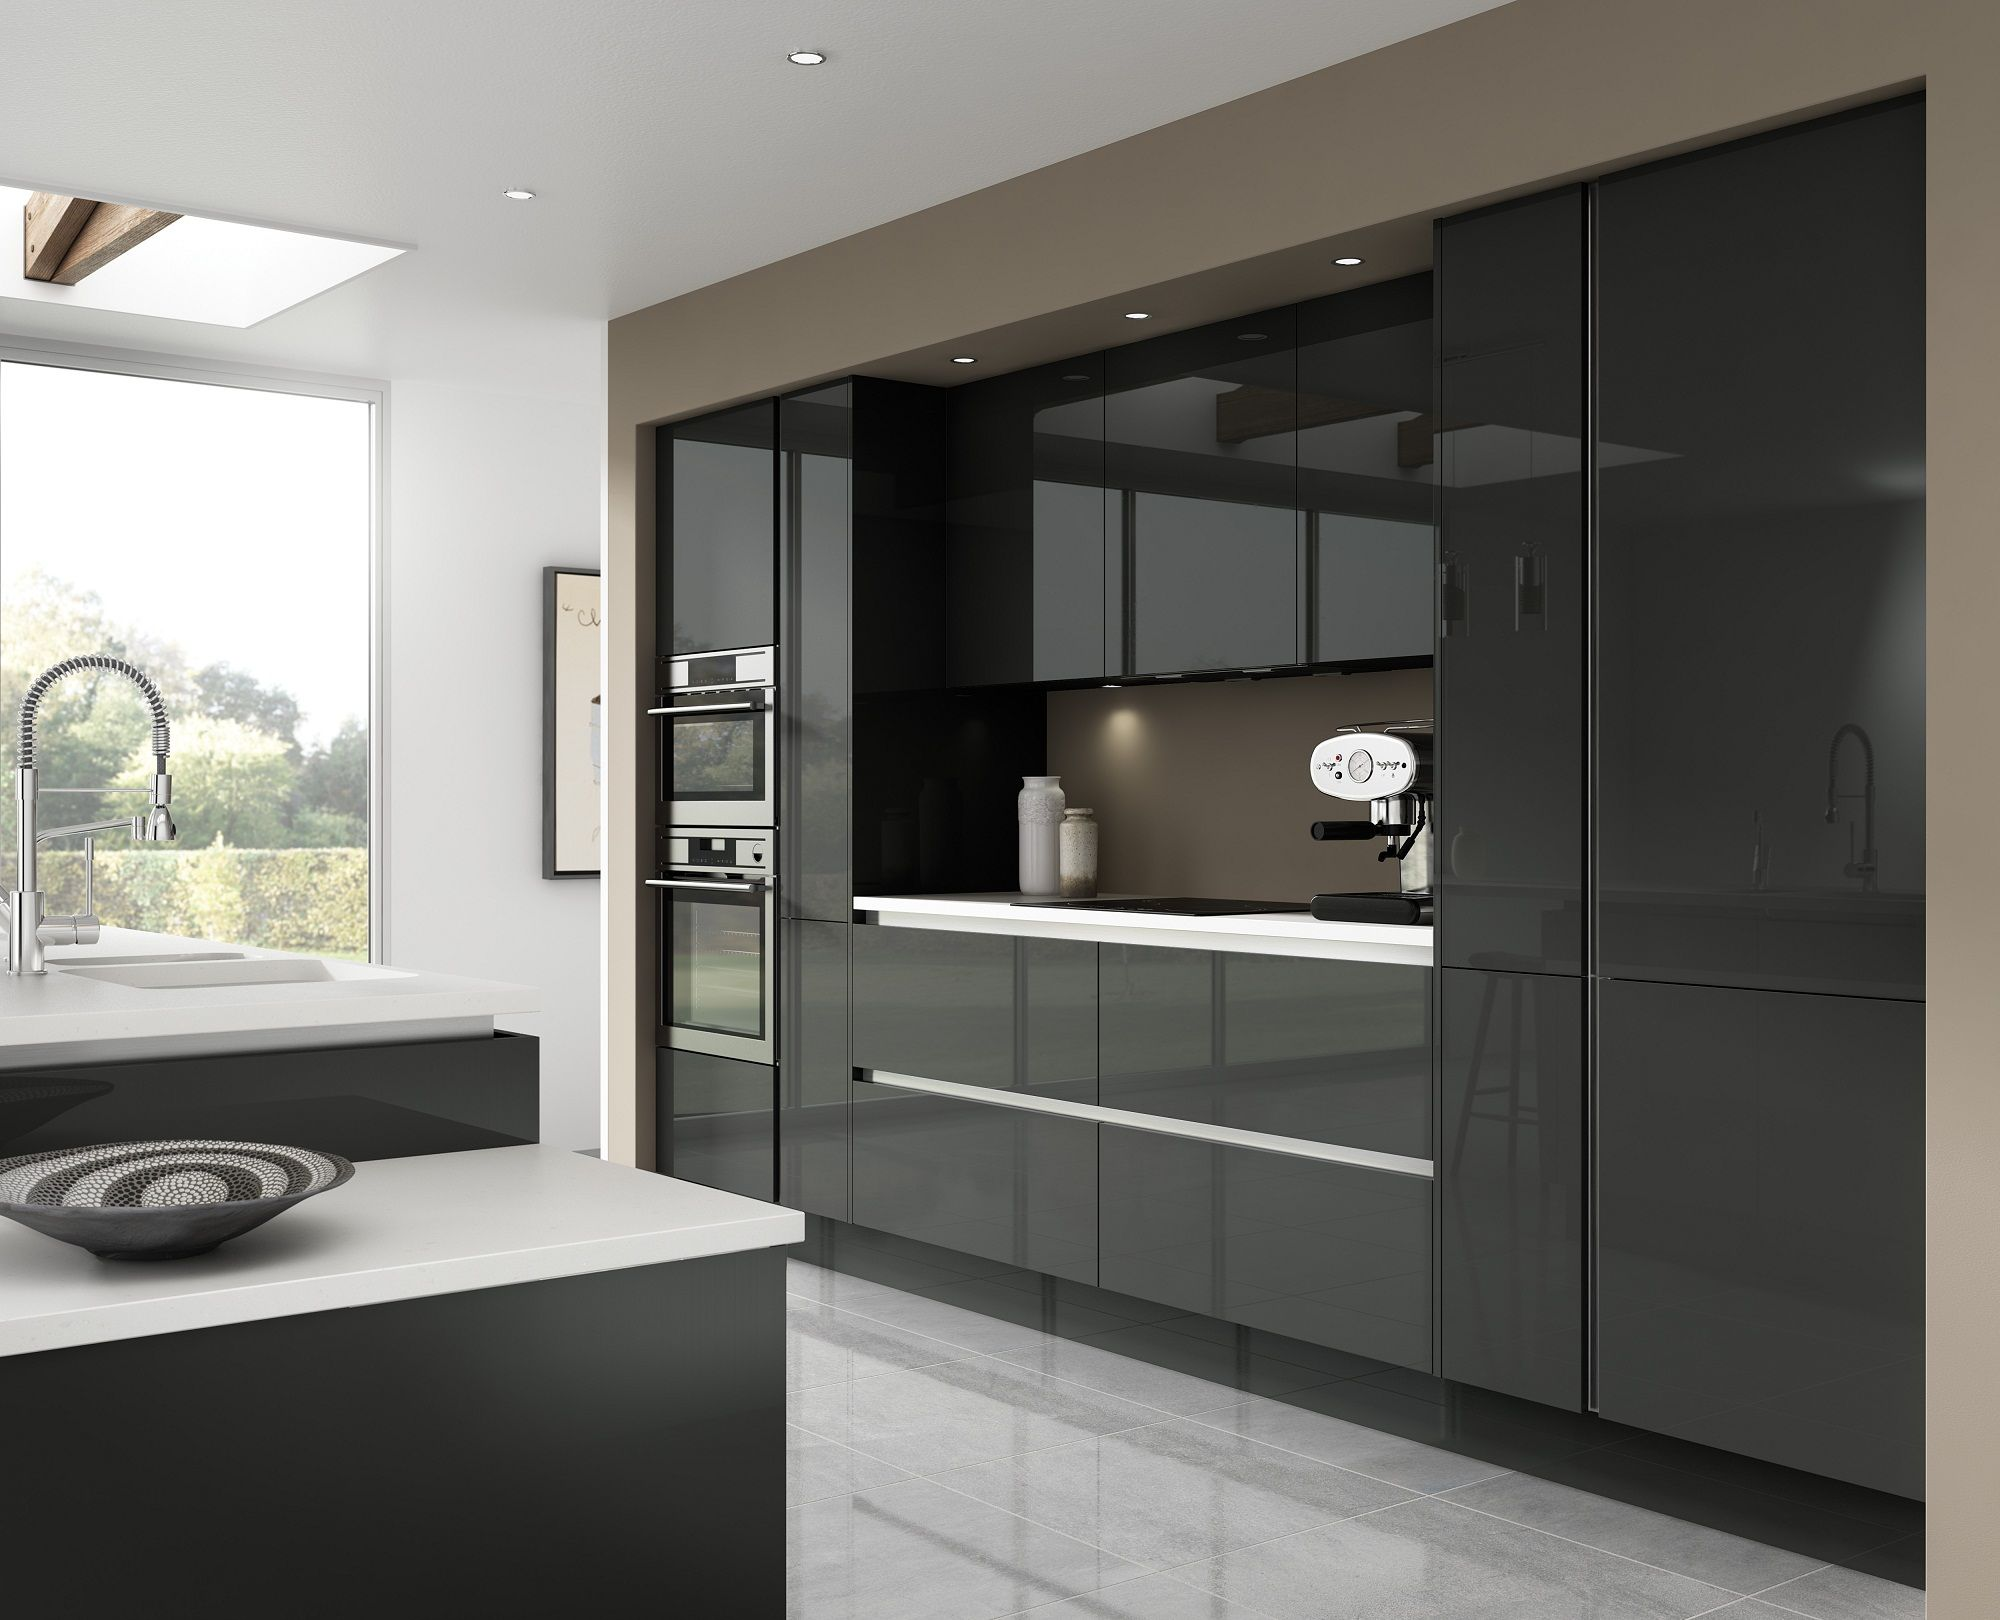 Pin By Rachel Chapple On Grey Gloss Kitchen Pinterest Kitchen - Dark grey gloss kitchen